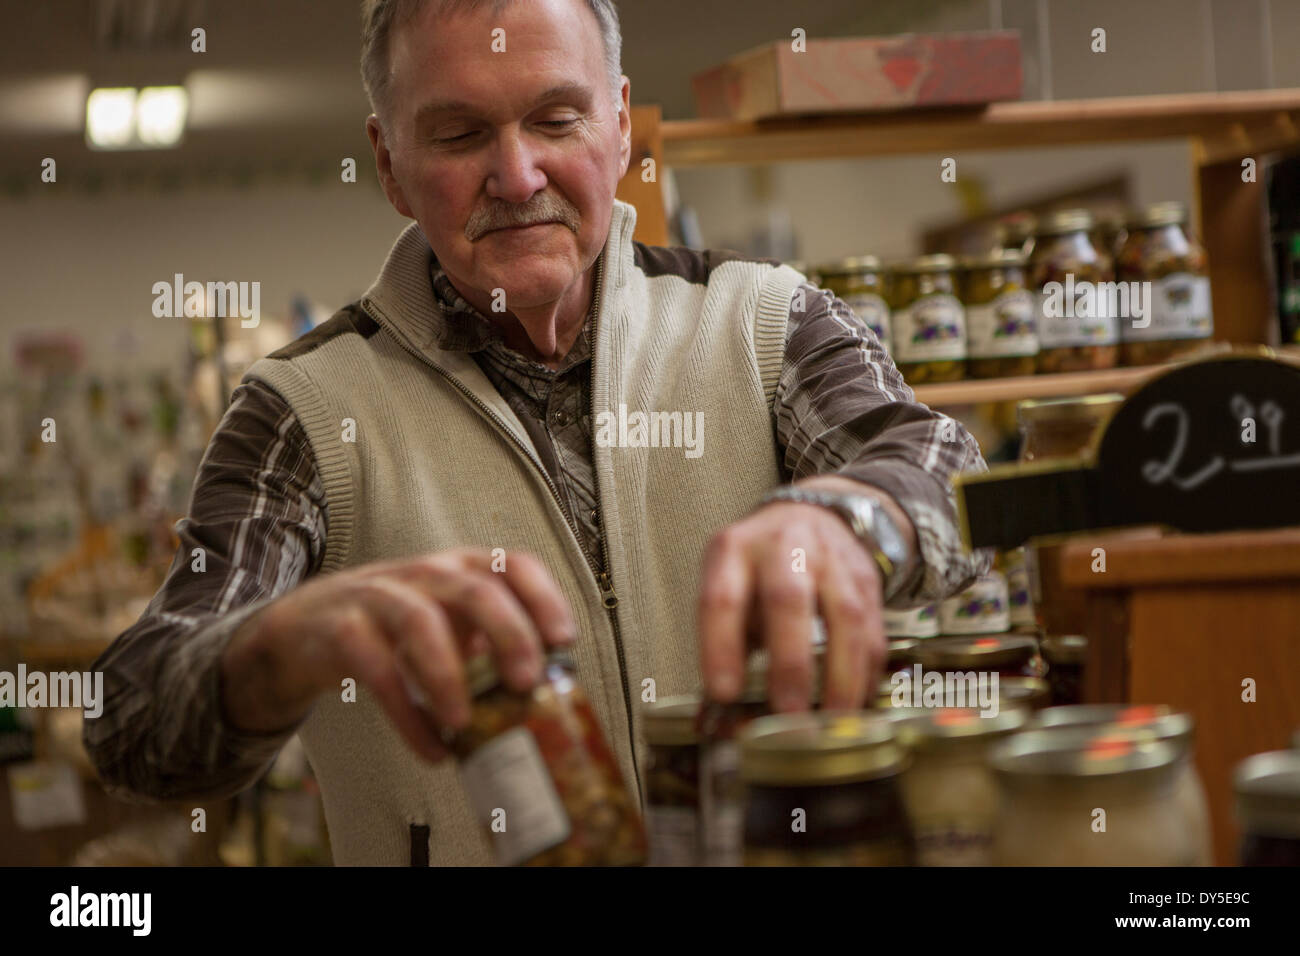 Shop keeper arranging jars in shop - Stock Image